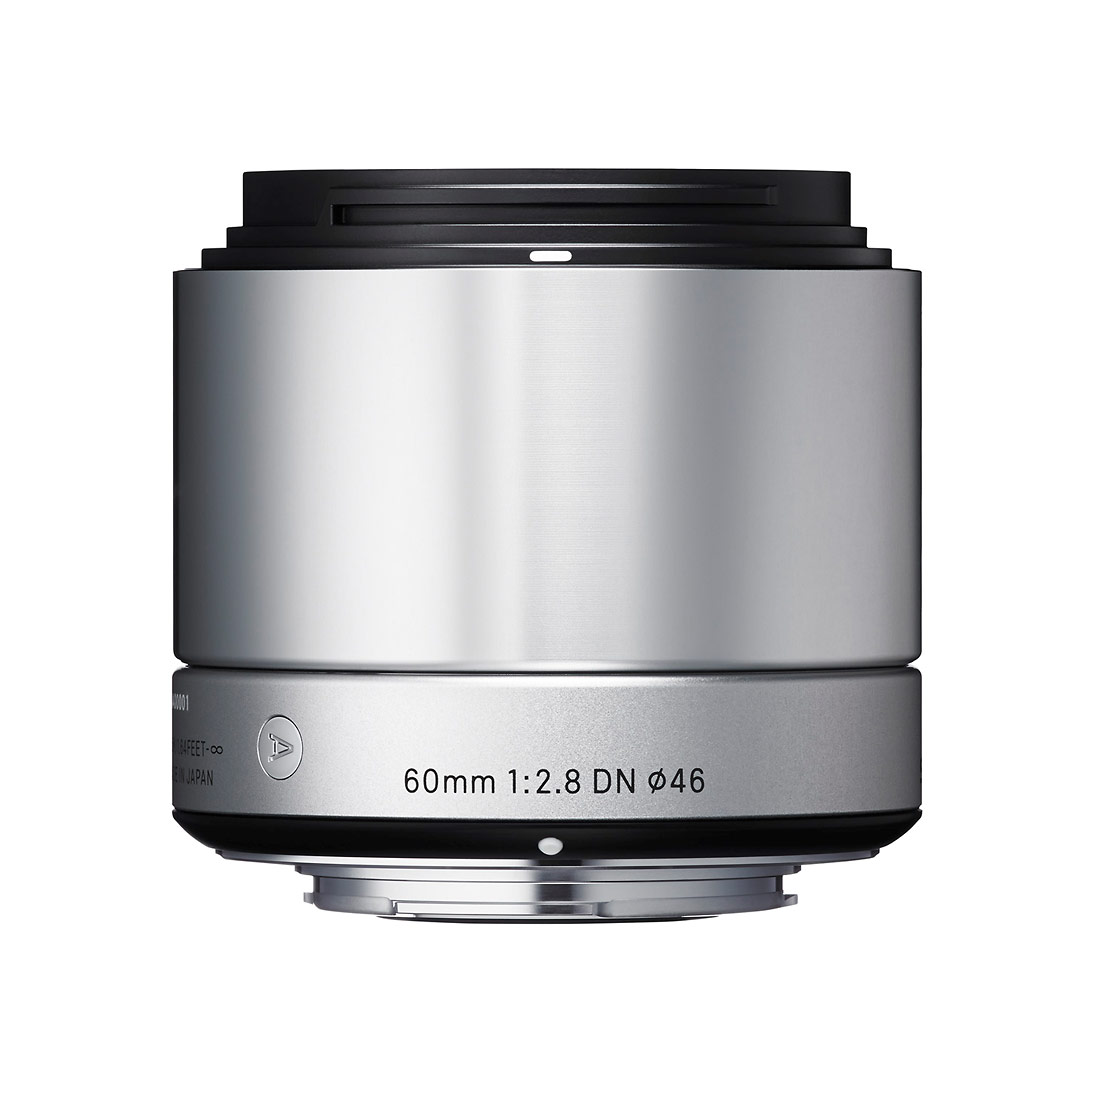 Sigma 60mm f/2.8 DN Lens For Mirrorless Cameras - Silver